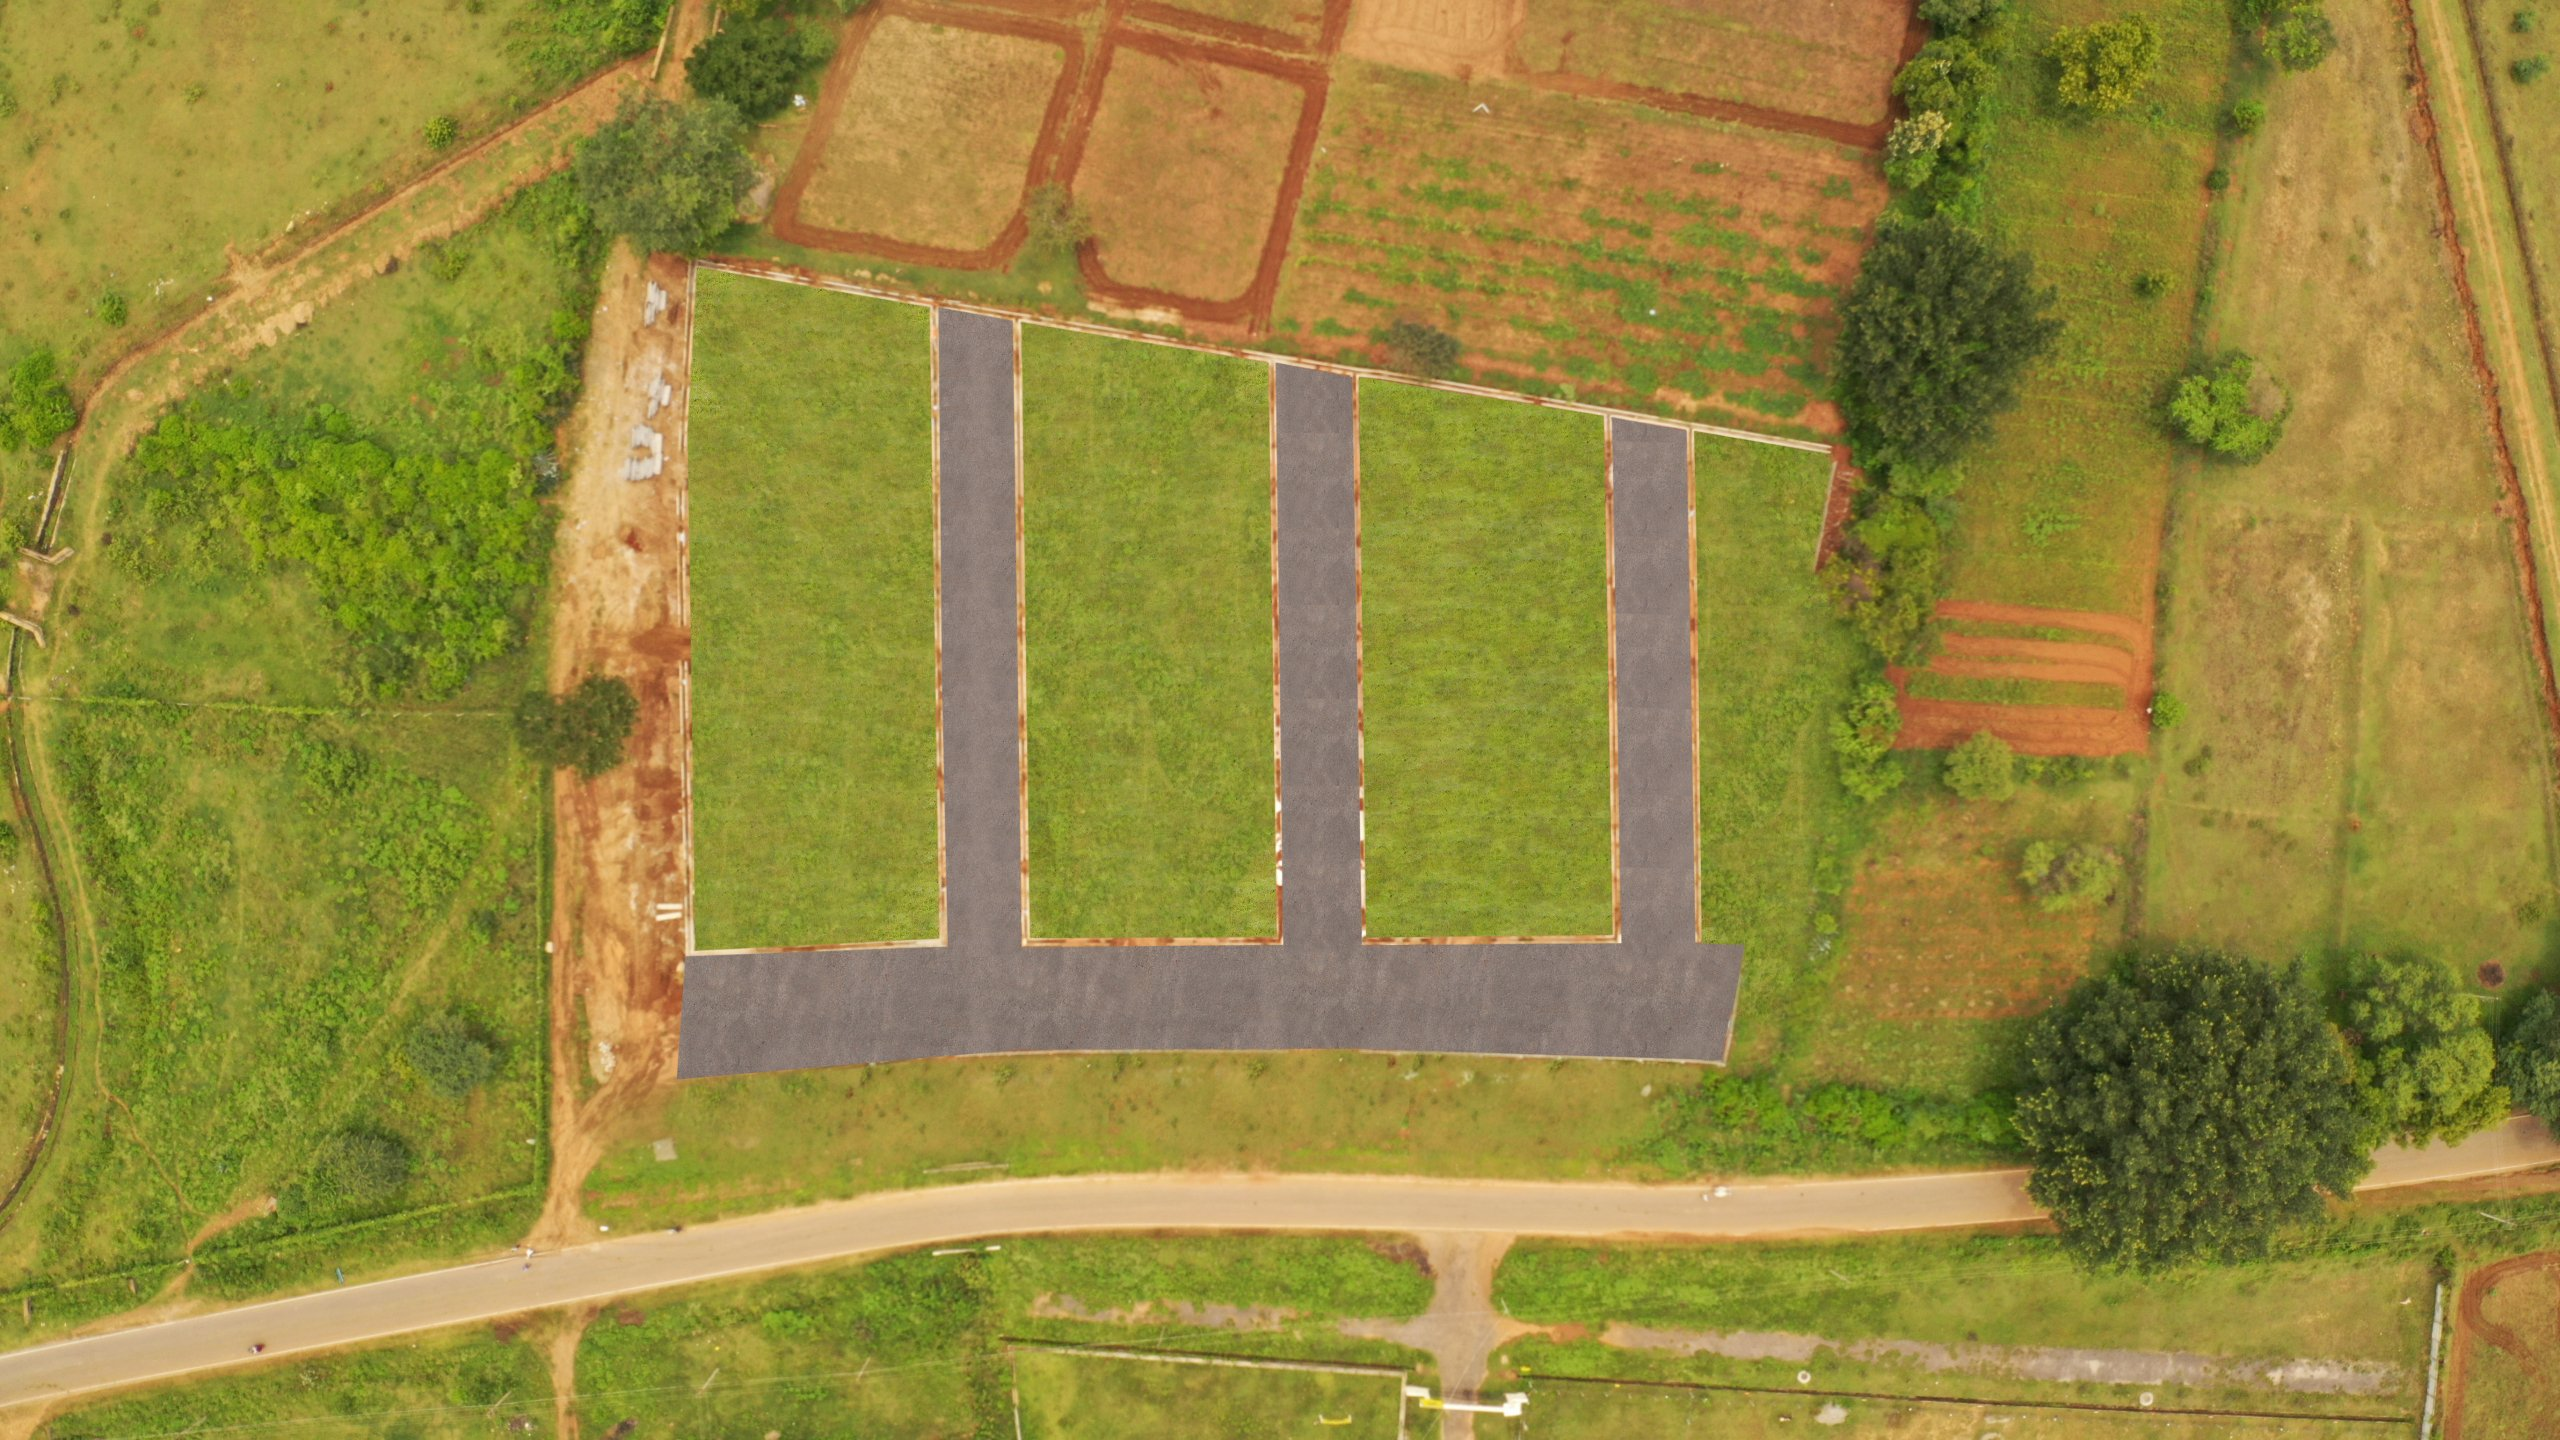 Herbal Sindhu Aerial View- Amenities Provided Well Connected Roads, Parks, UGD, Electricity Connection And Water Connection